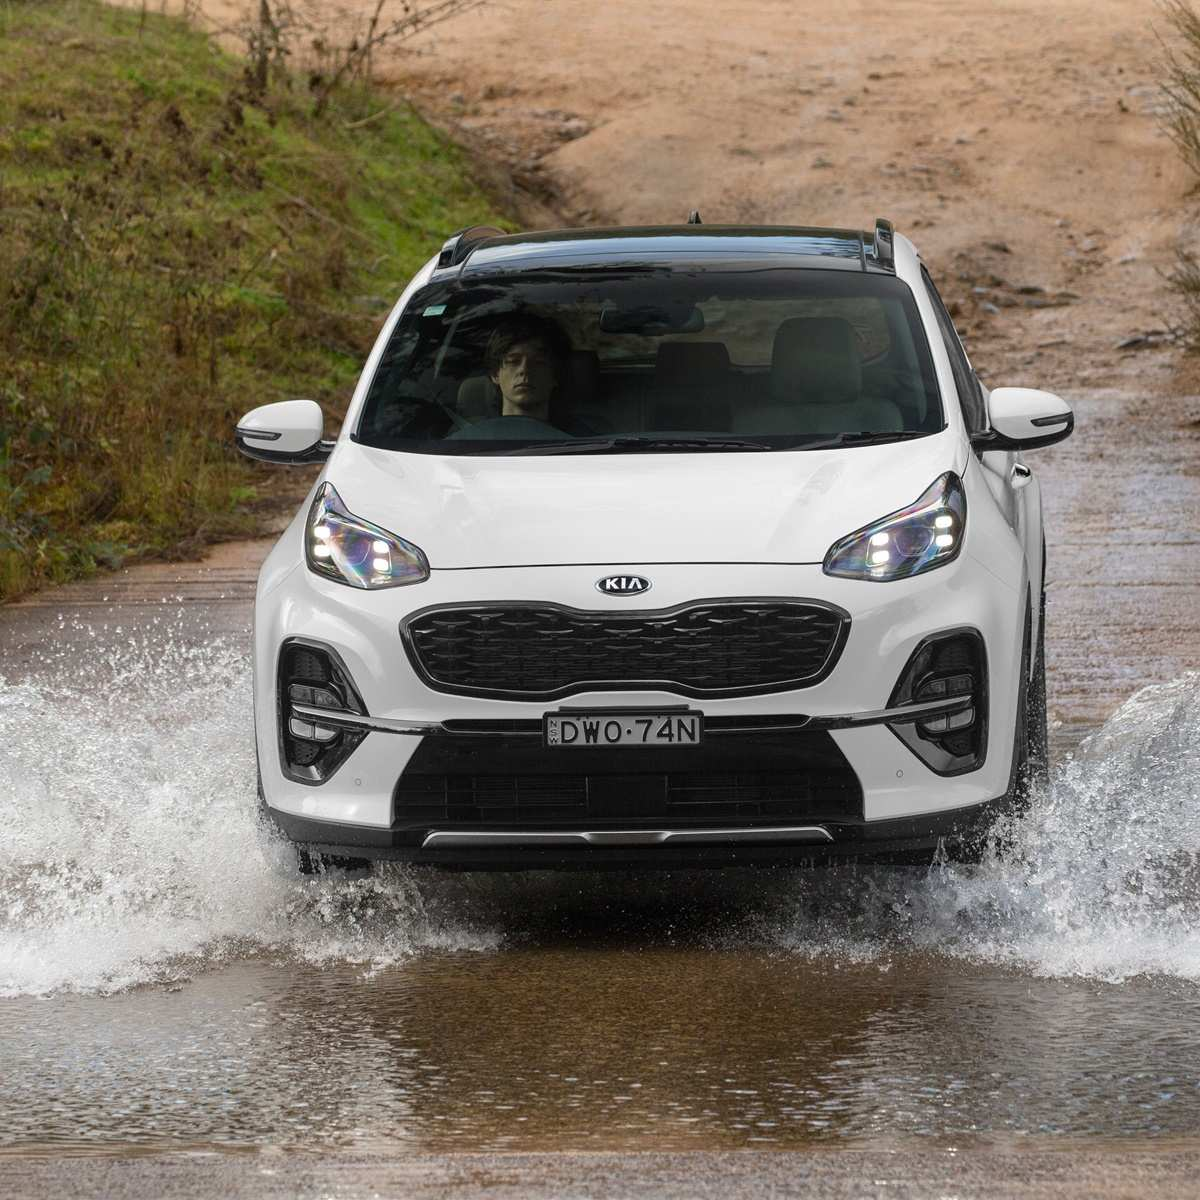 78 All New 2019 Kia Sportage Review New Concept